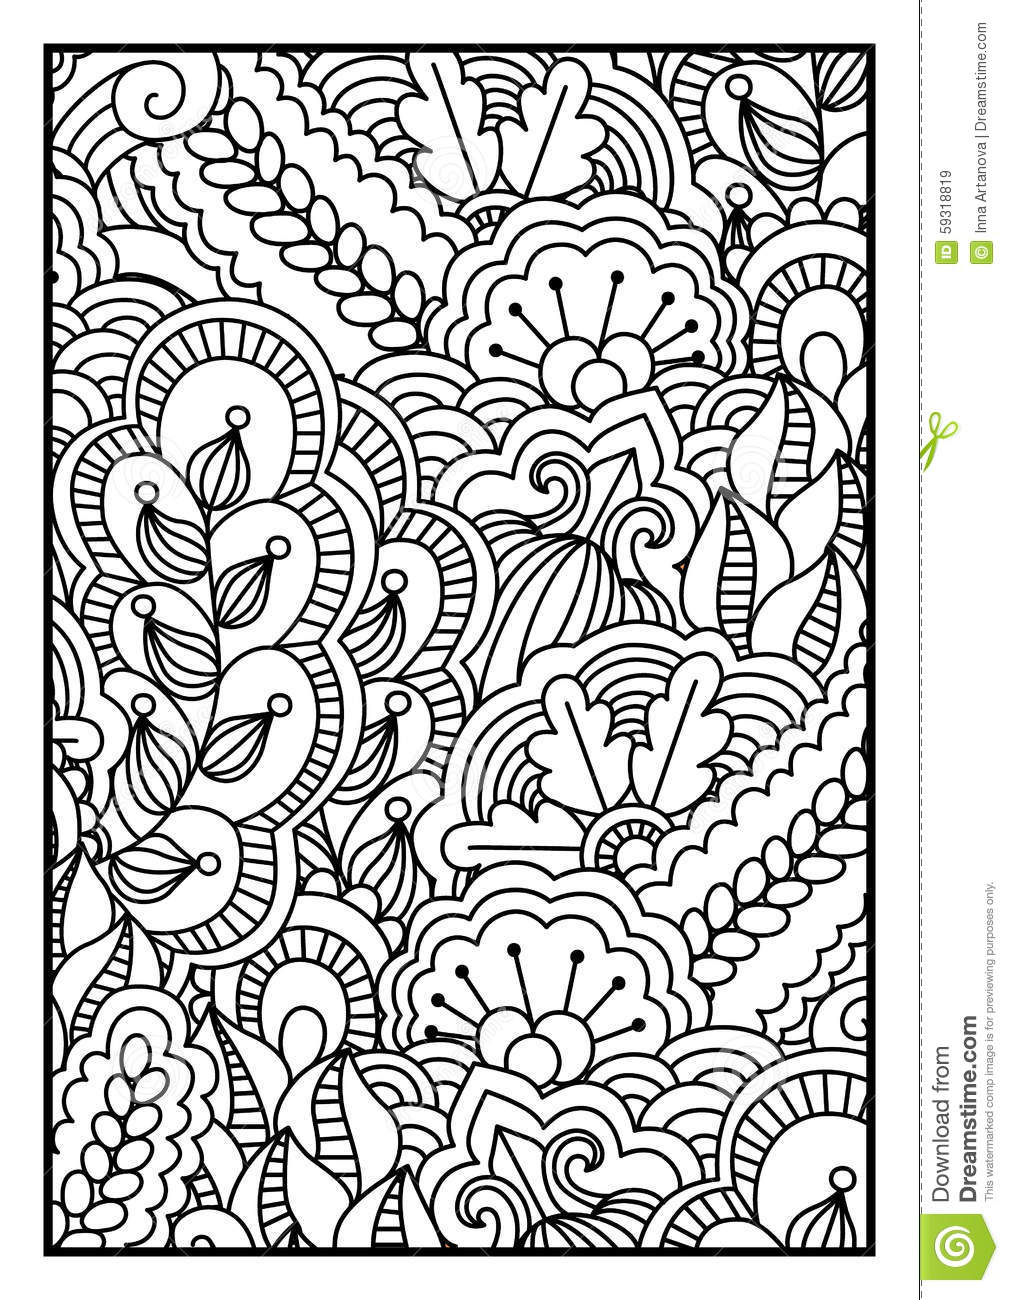 Pattern For Coloring Book. Black And White Background With Floral ...